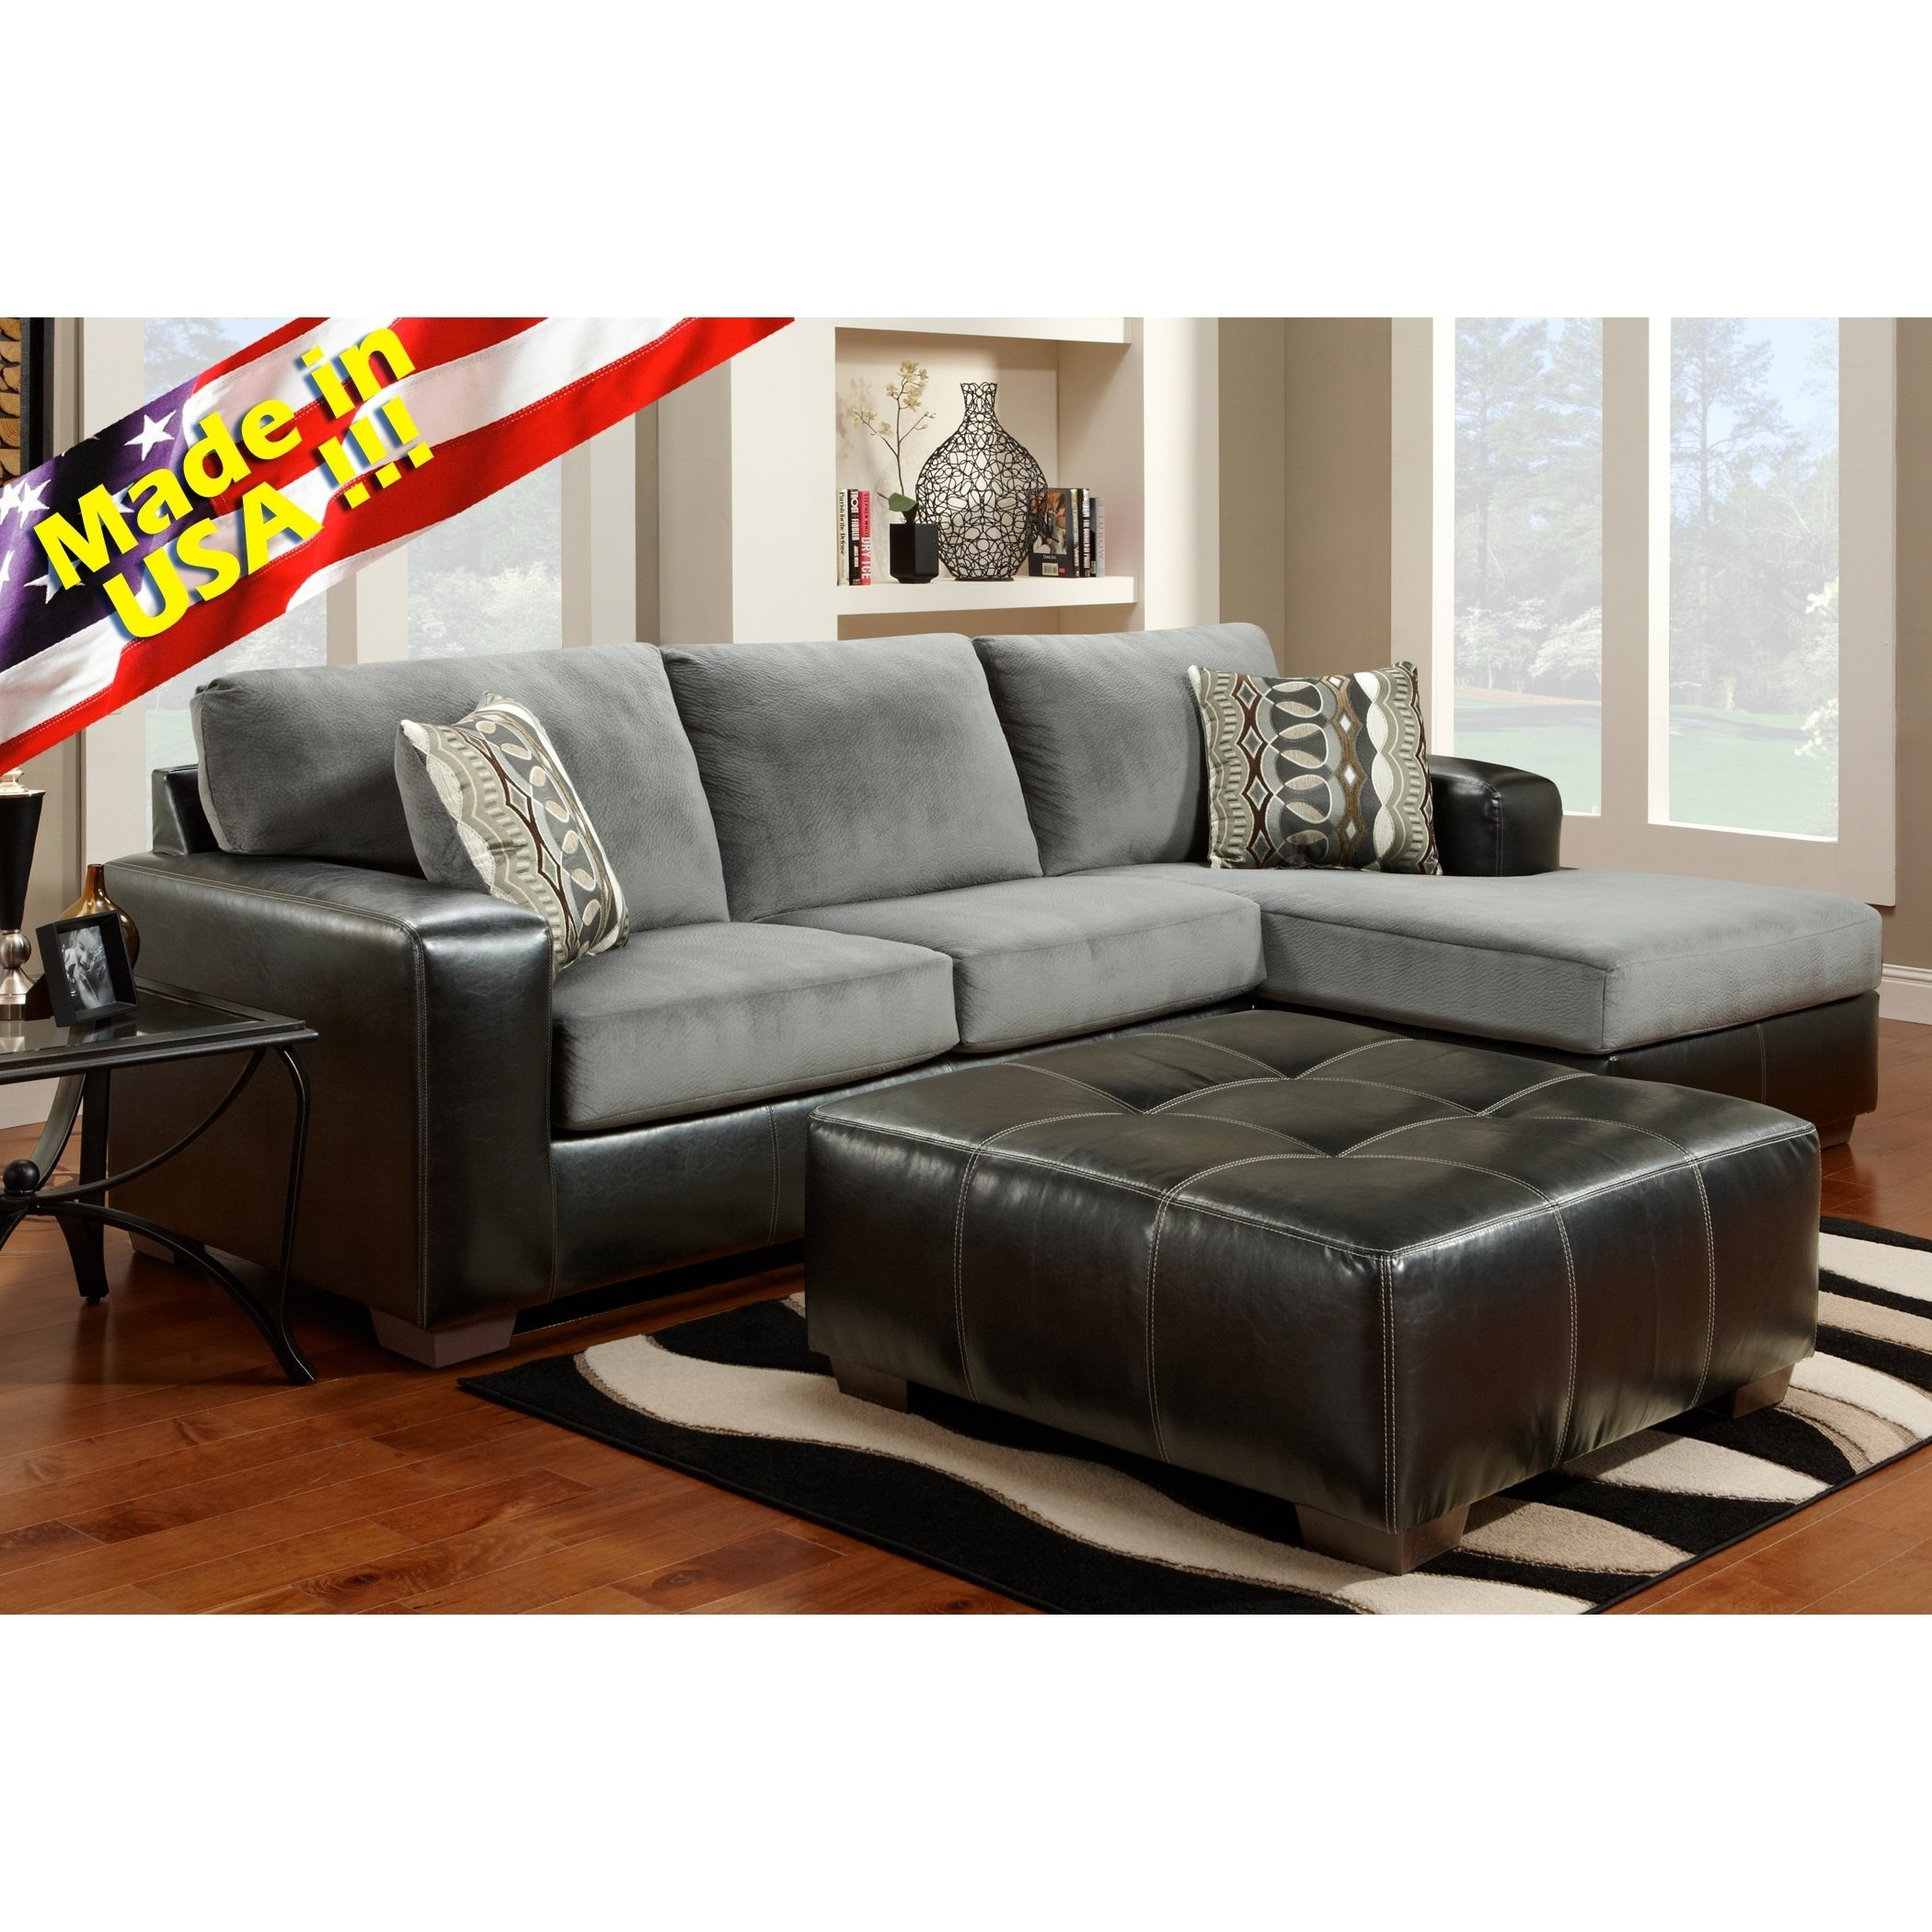 Cumulus Black Gray Two Toned Sectional Sofa Chaise Set, Made In Usa In Made In Usa Sectional Sofas (View 8 of 10)